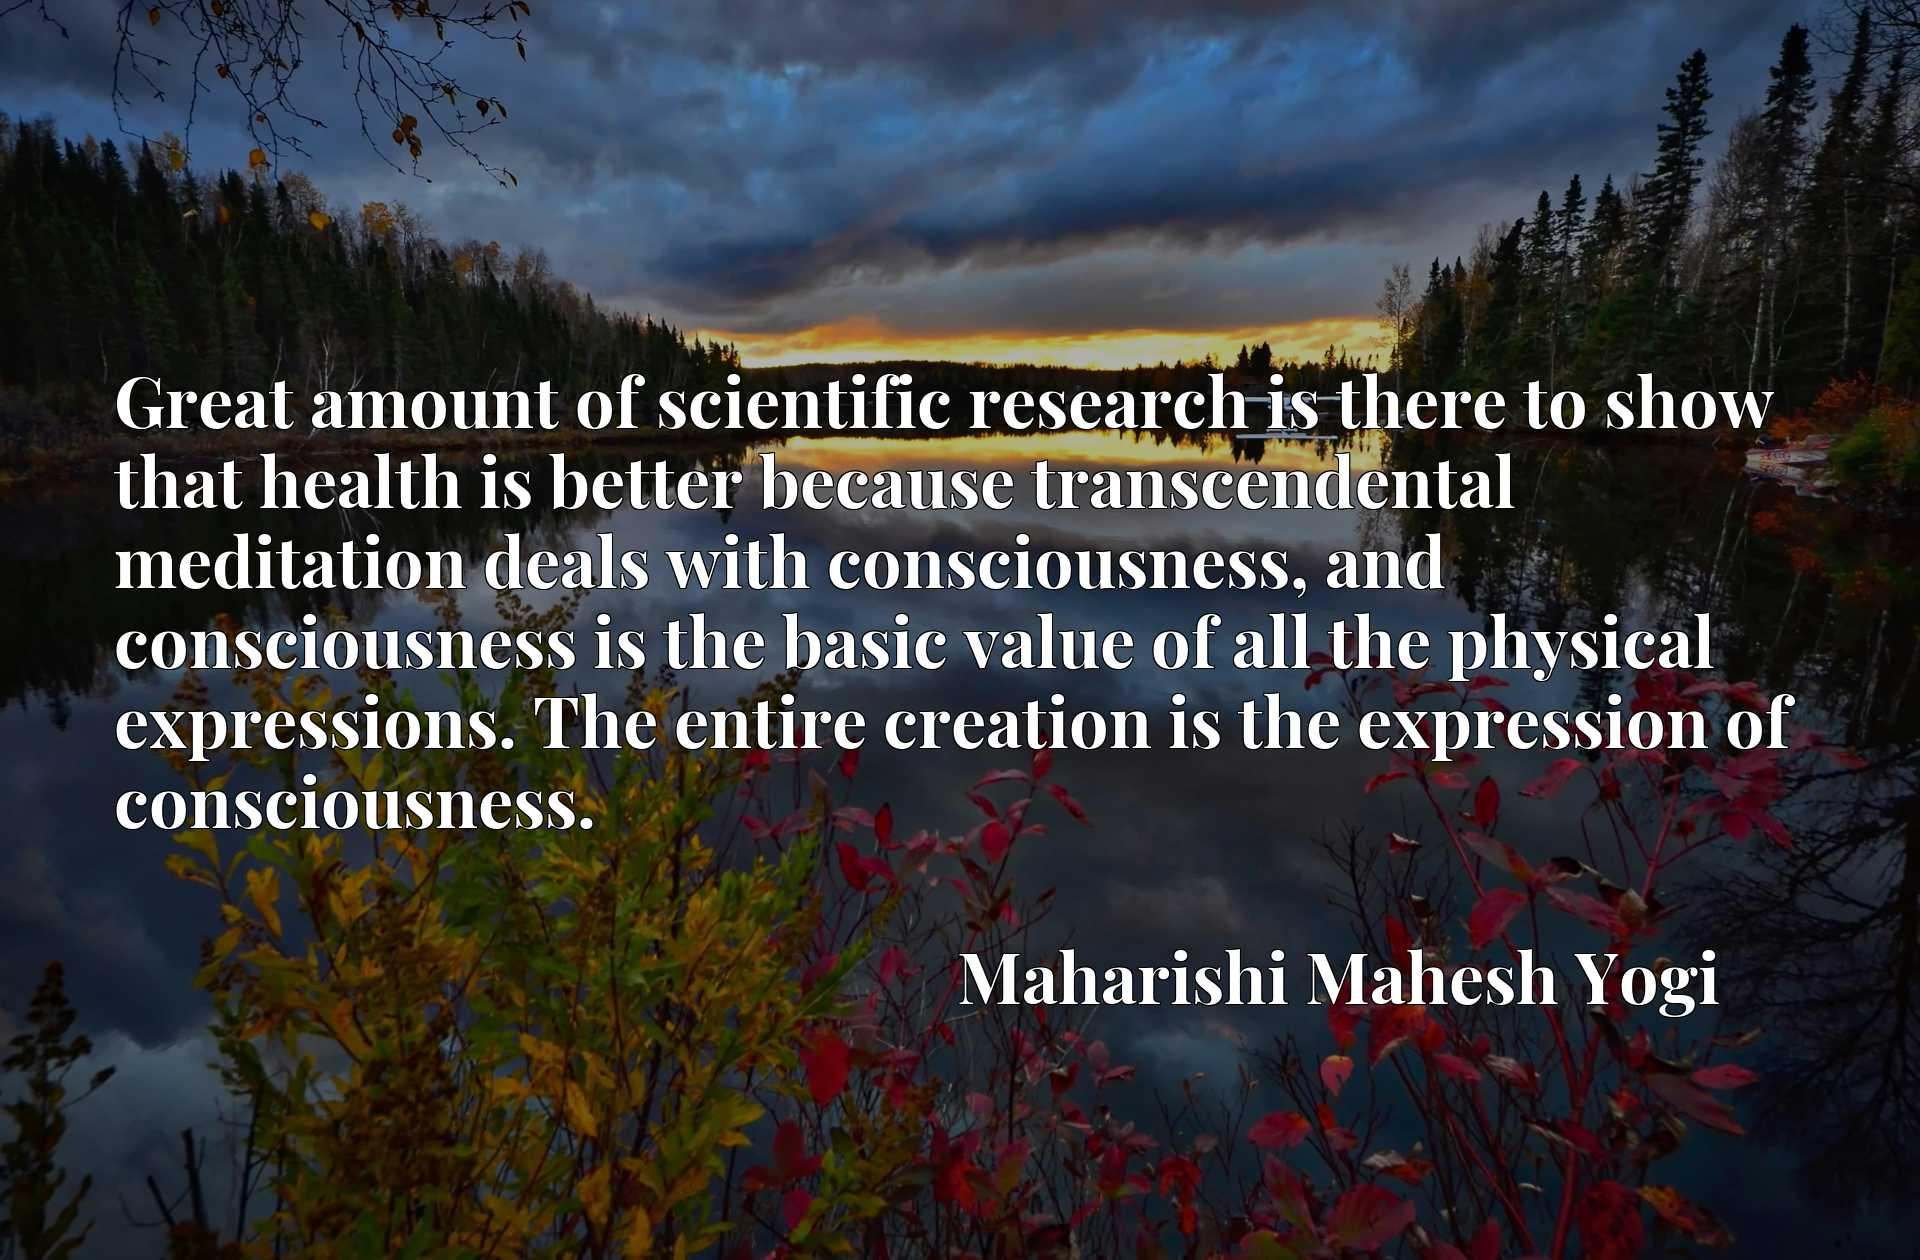 Great amount of scientific research is there to show that health is better because transcendental meditation deals with consciousness, and consciousness is the basic value of all the physical expressions. The entire creation is the expression of consciousness.